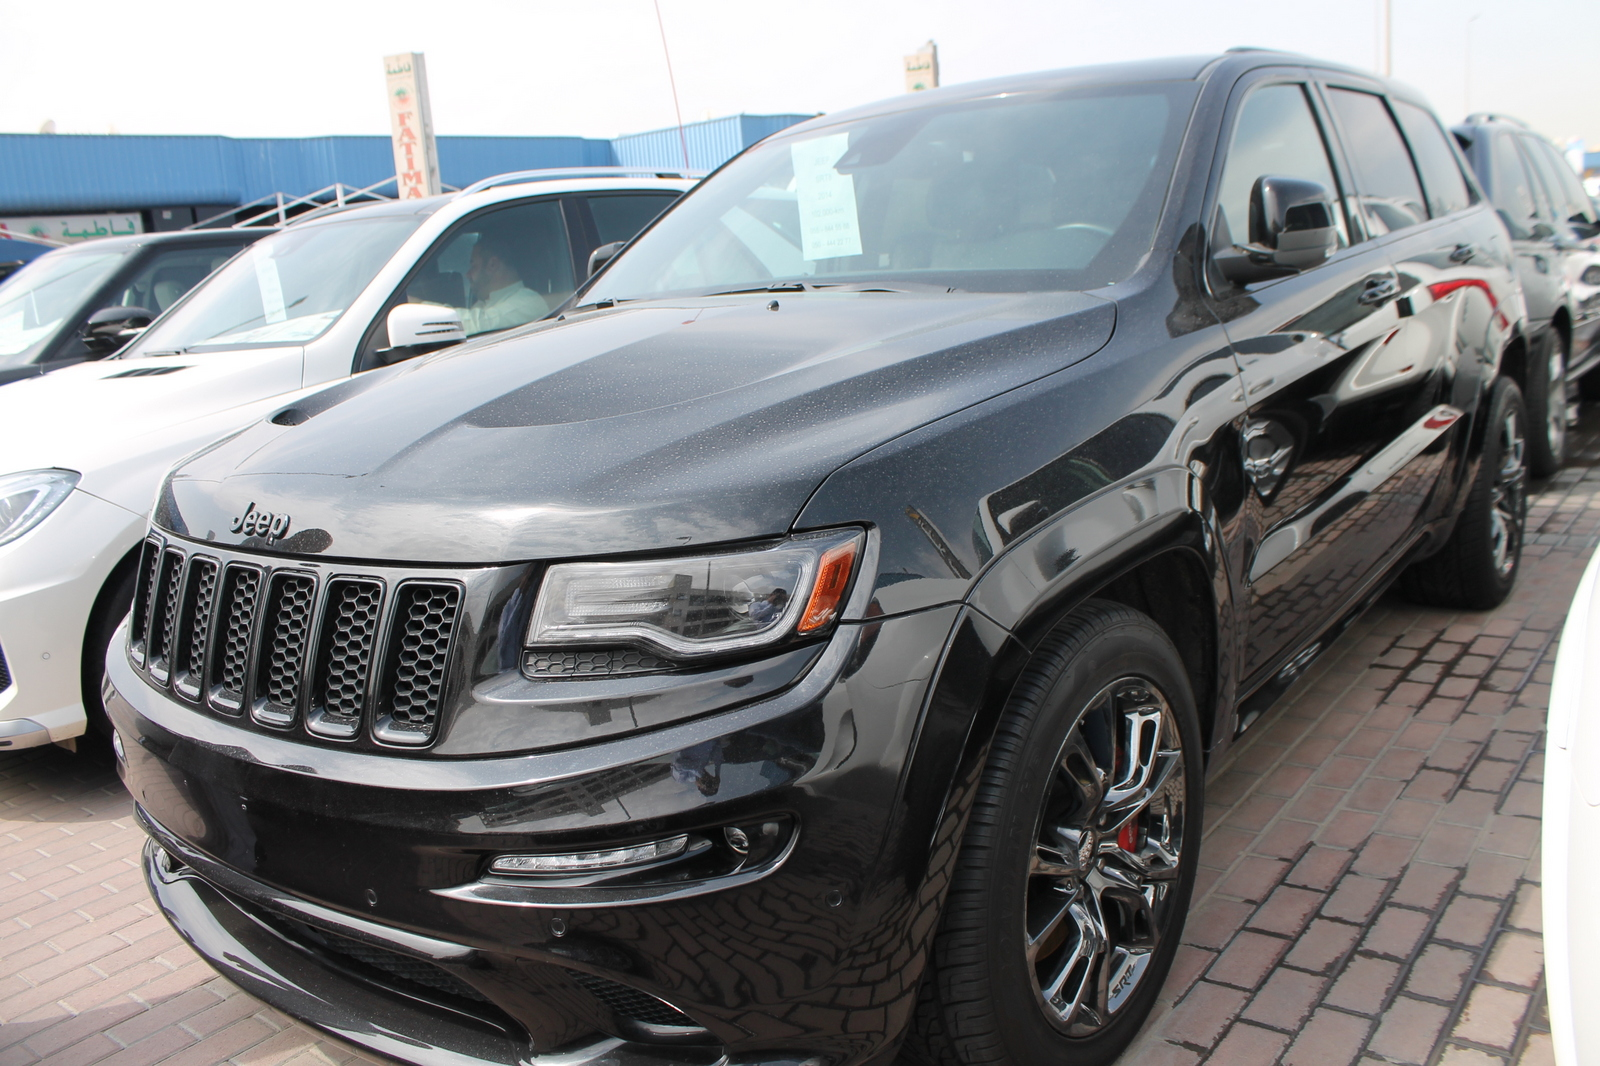 used jeep grand cherokee srt8 2014 car for sale in dubai. Black Bedroom Furniture Sets. Home Design Ideas